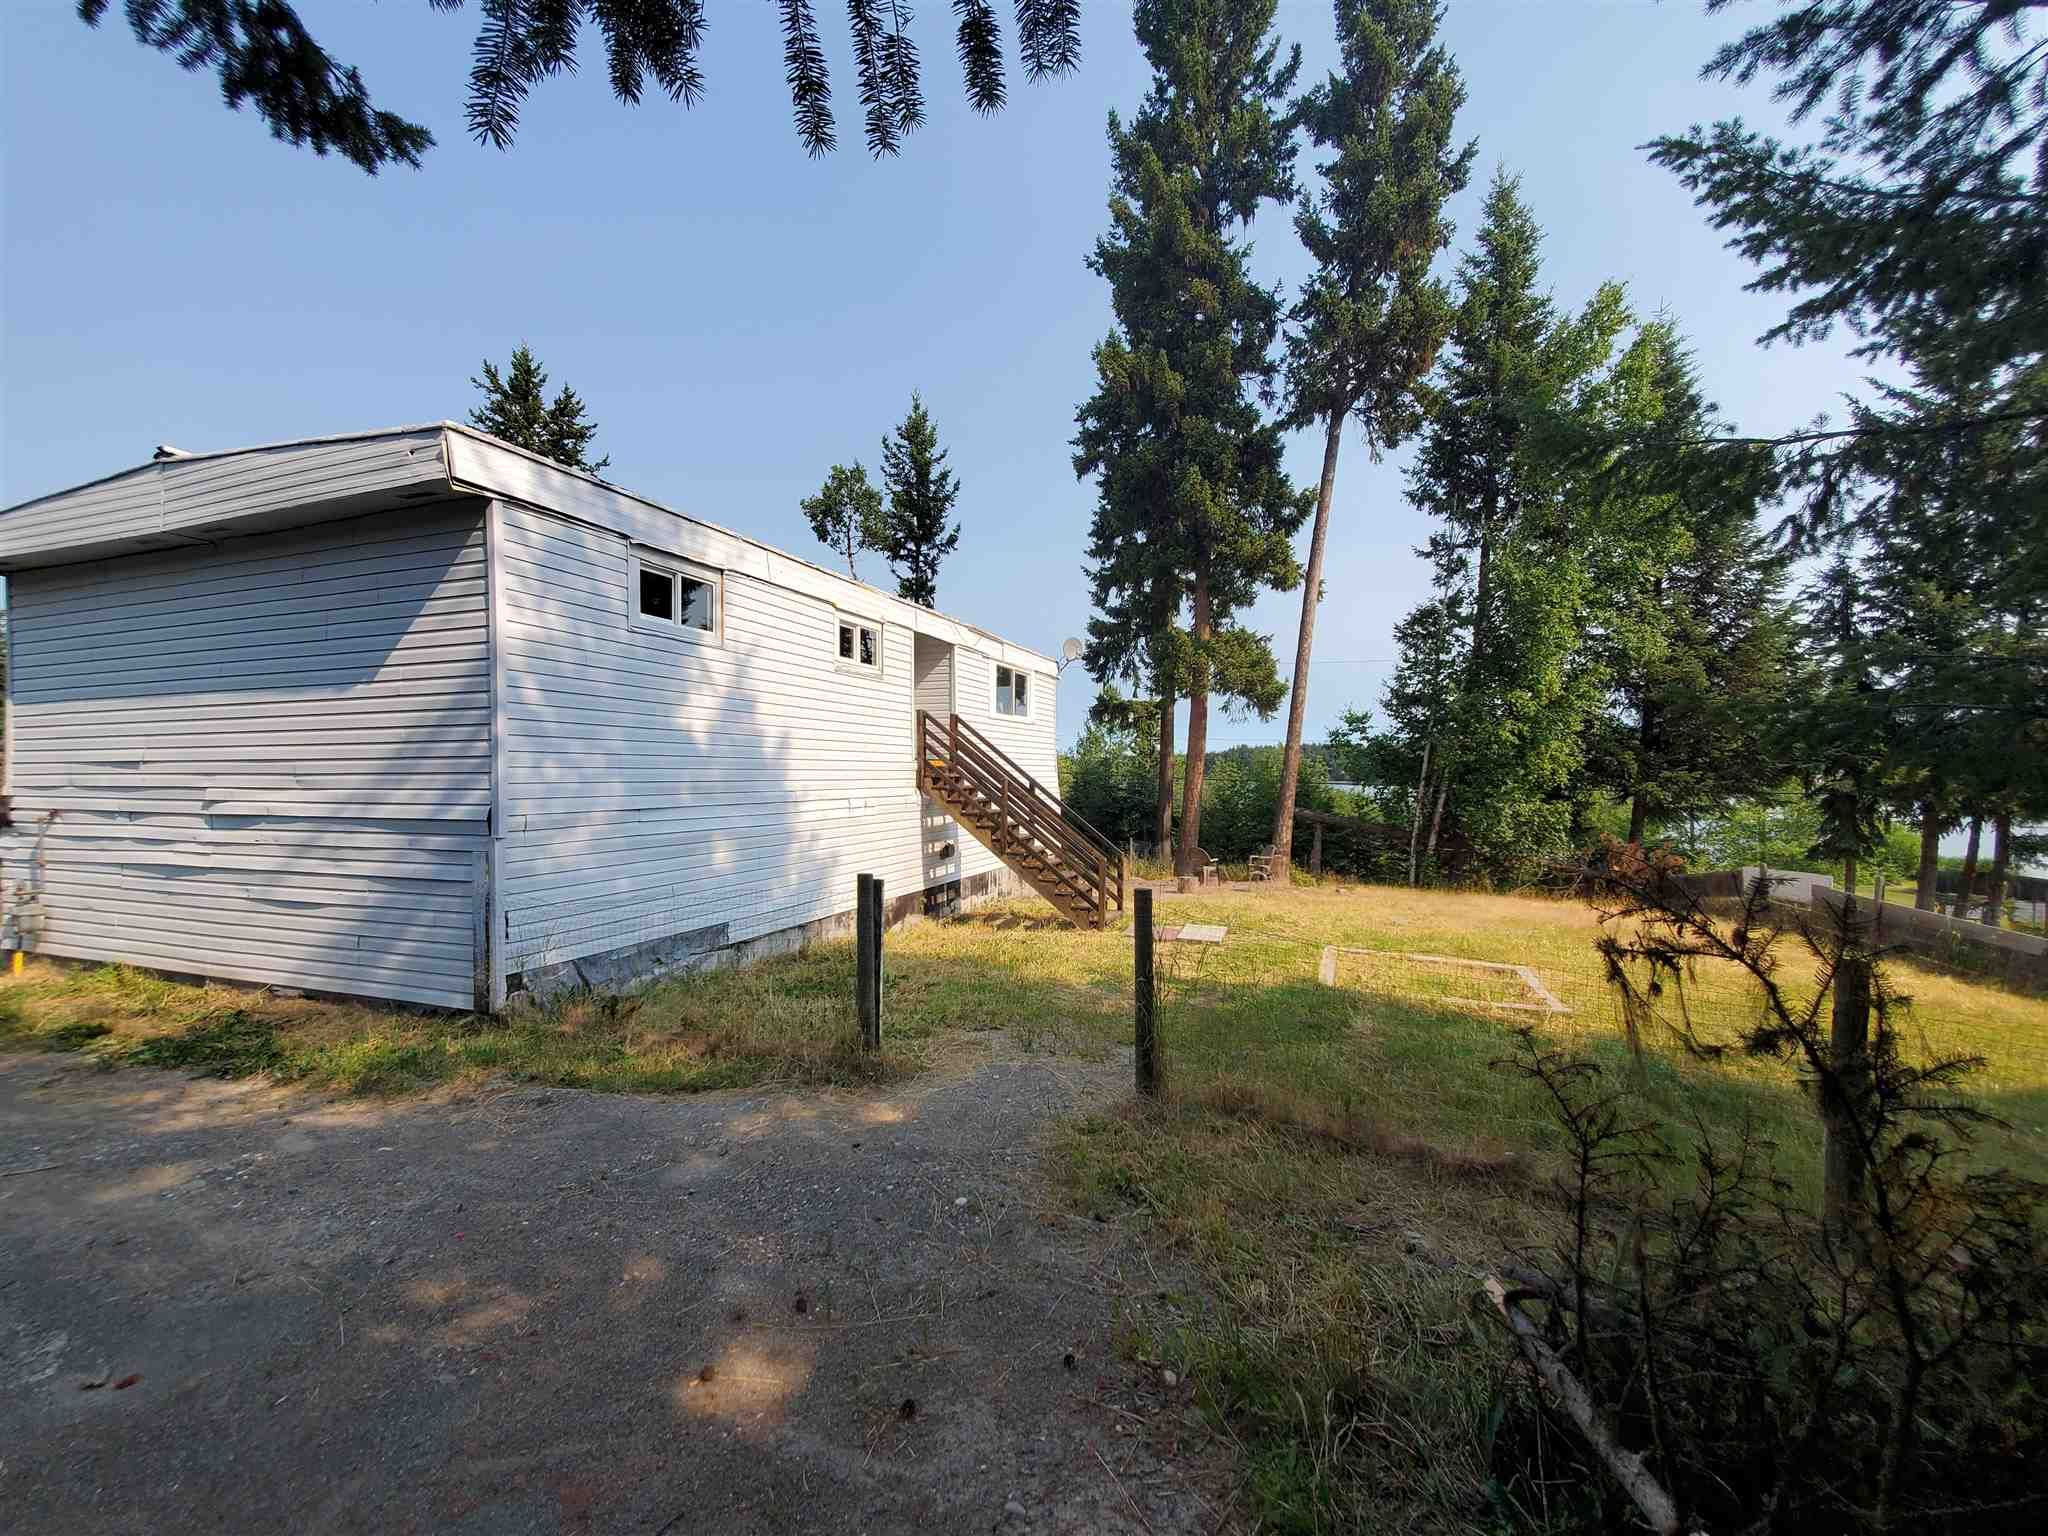 Photo 3: Photos: 2507 NORWOOD Road in Quesnel: Bouchie Lake Manufactured Home for sale (Quesnel (Zone 28))  : MLS®# R2606130